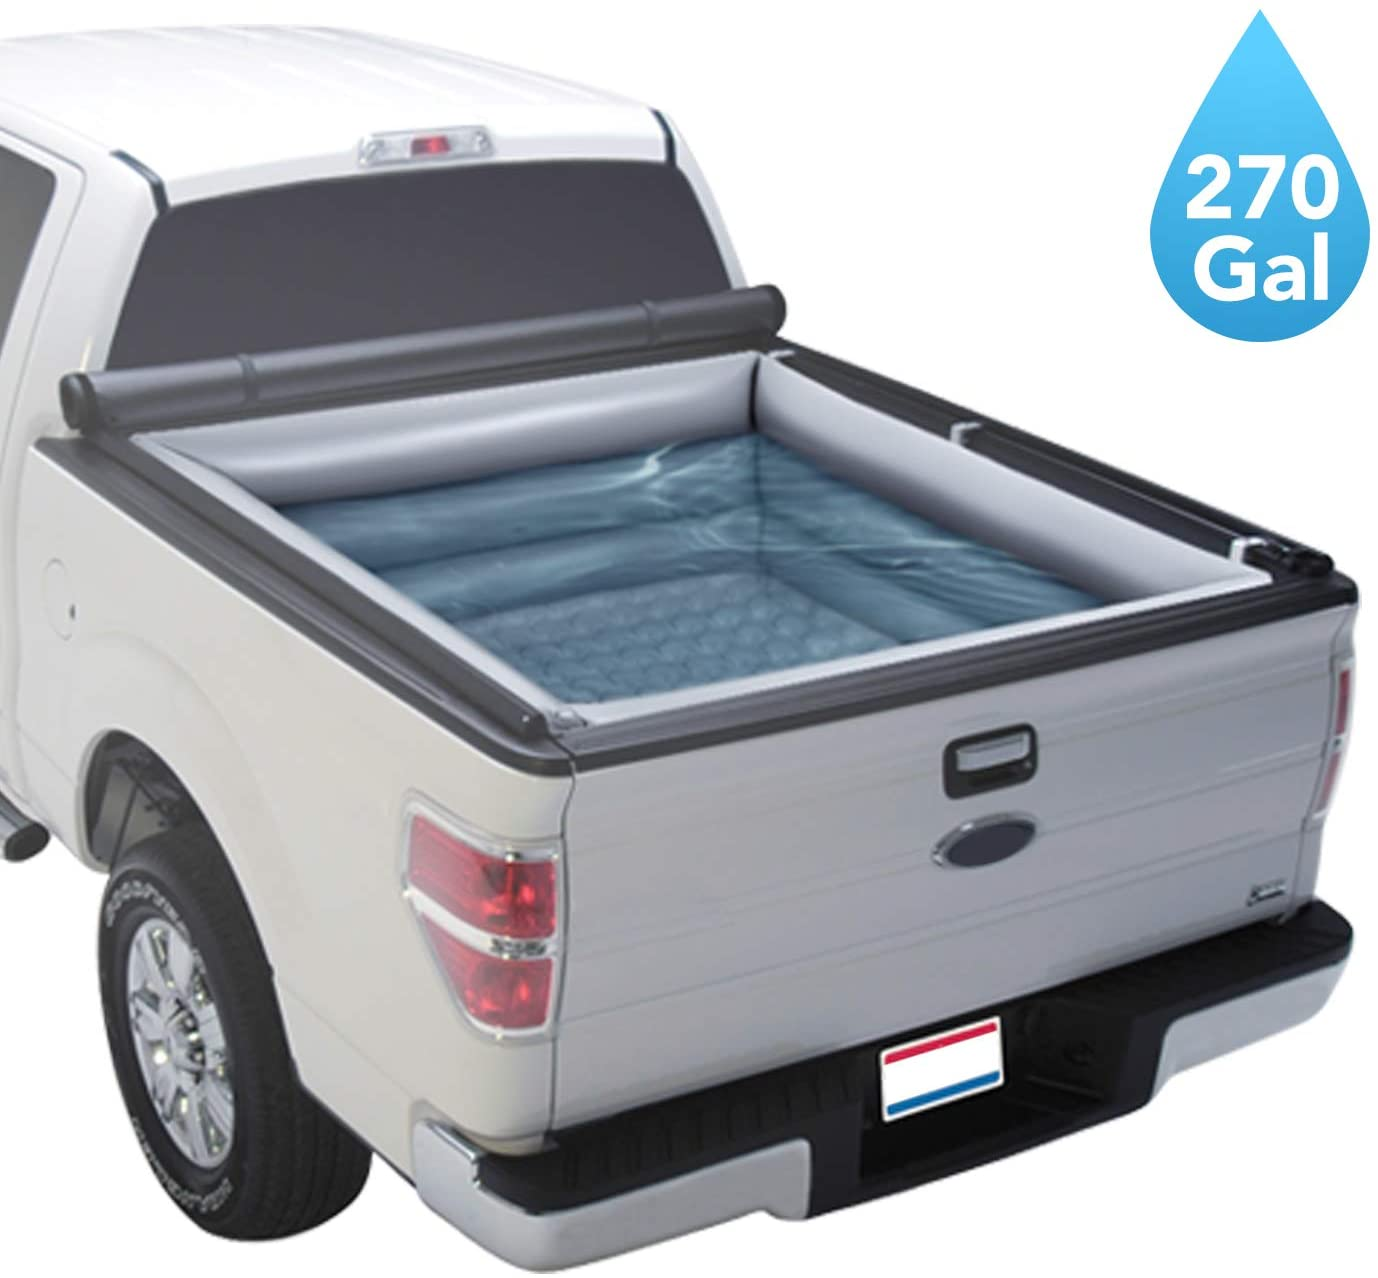 GOLOHO Inflatable Truck Bed Pool